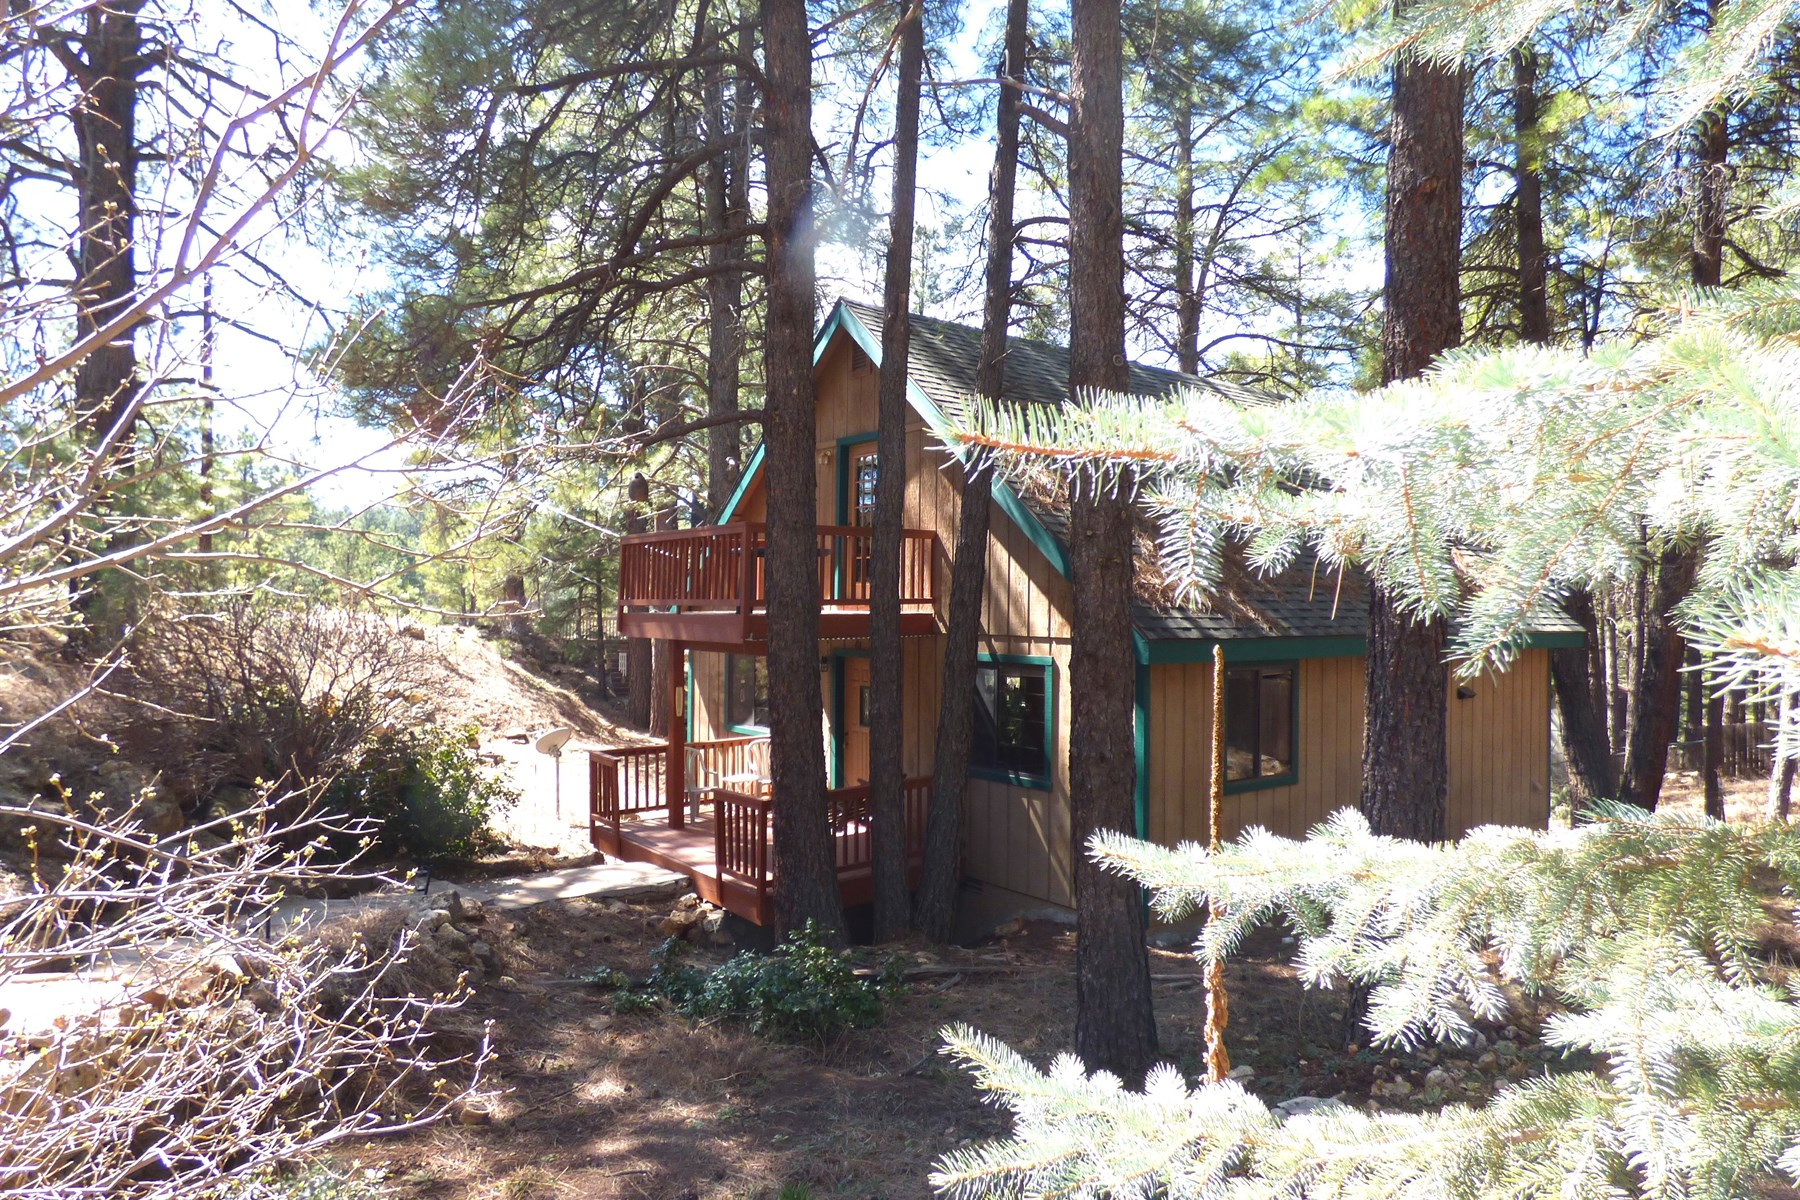 Single Family Home for Sale at Charming home in the pines 2845 Oraibi Flagstaff, Arizona, 86005 United States